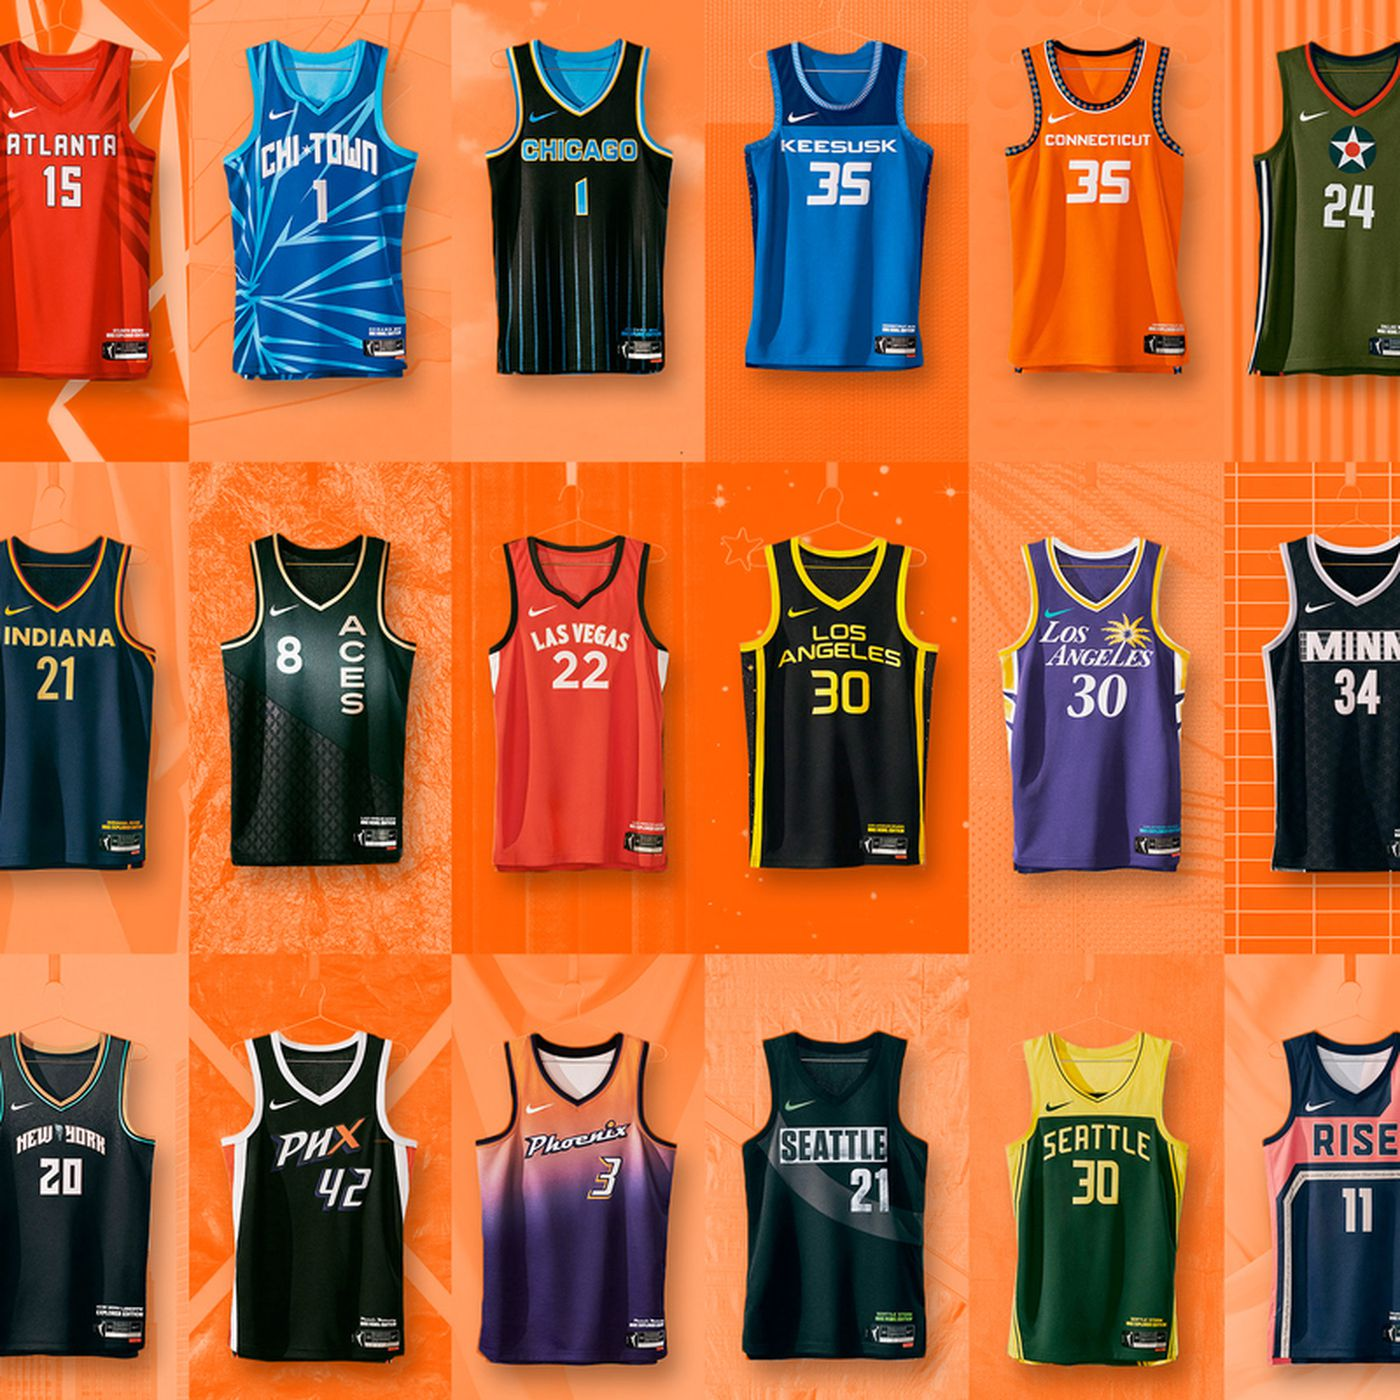 An Exhaustive Power Ranking of the New WNBA Jerseys - The Ringer